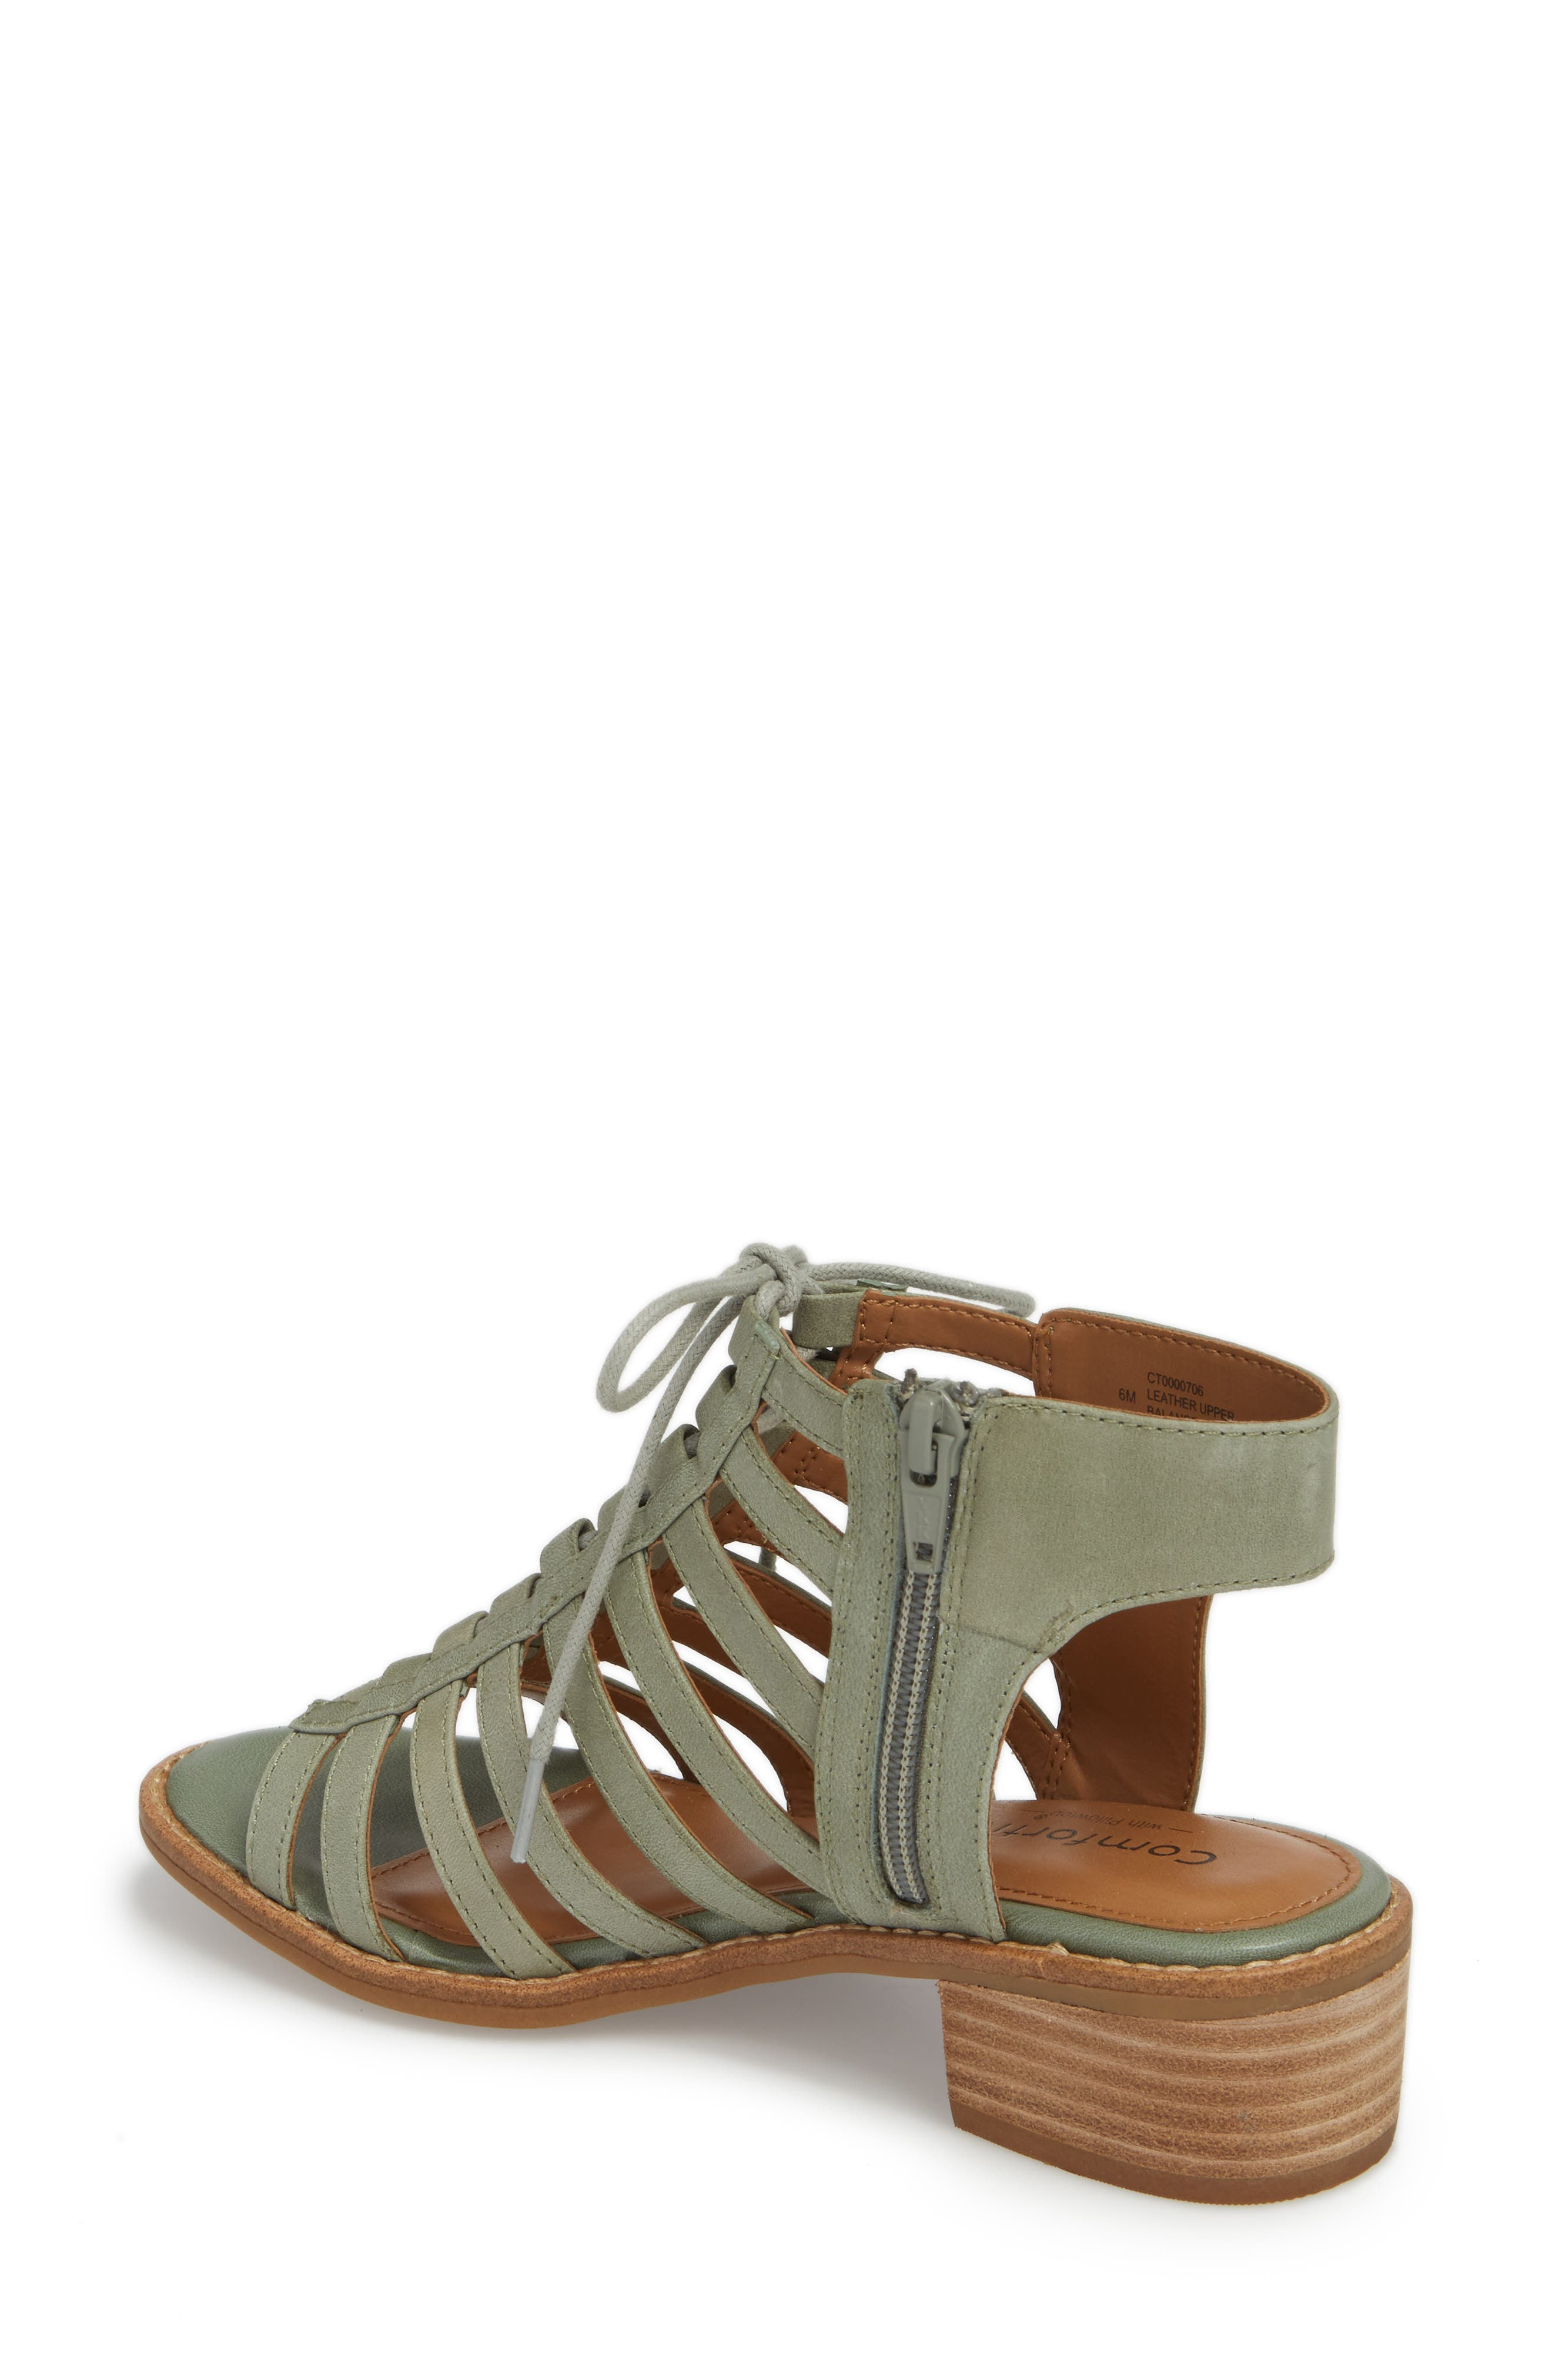 Blossom Sandal,                             Alternate thumbnail 2, color,                             SAGE LEATHER